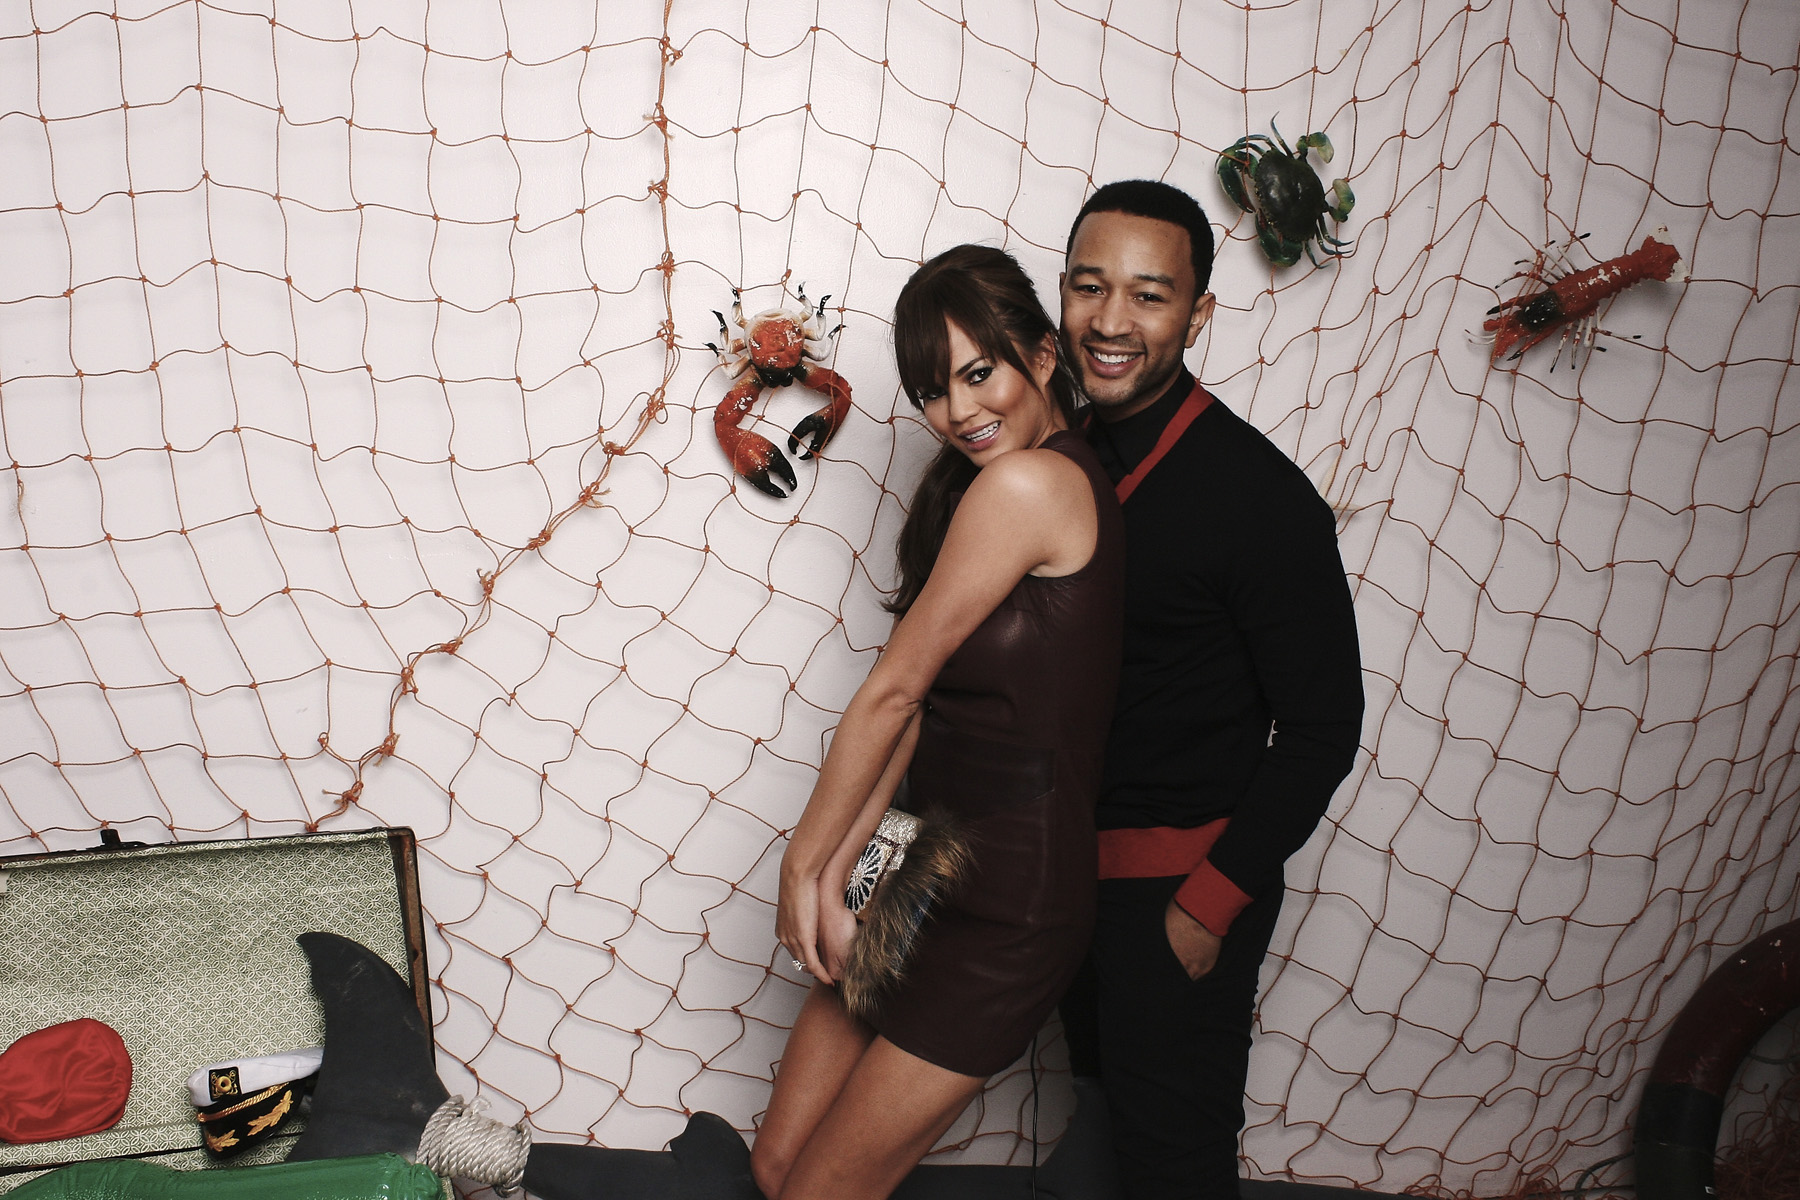 New York Photo Booth Chef Roble Crabtacular for Chrissy Tiegen and John Legend